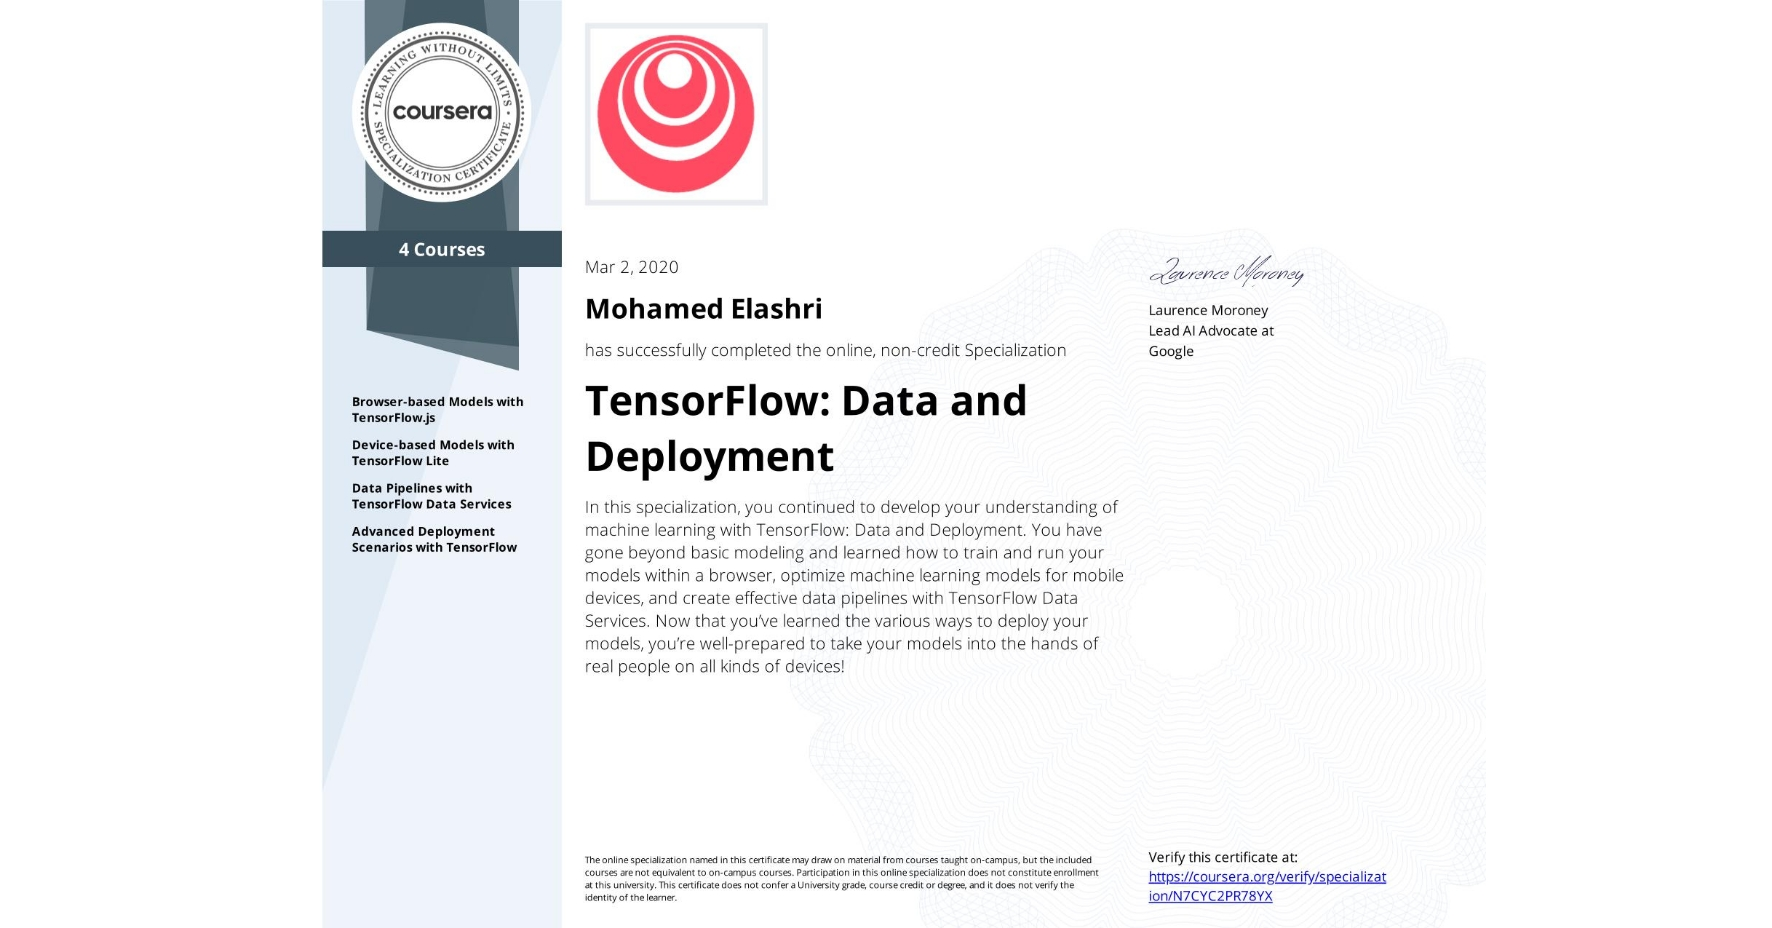 View certificate for Mohamed Elashri, TensorFlow: Data and Deployment, offered through Coursera. In this specialization, you continued to develop your understanding of machine learning with TensorFlow: Data and Deployment. You have gone beyond basic modeling and learned how to train and run your models within a browser, optimize machine learning models for mobile devices, and create effective data pipelines with TensorFlow Data Services. Now that you've learned the various ways to deploy your models, you're well-prepared to take your models into the hands of real people on all kinds of devices!